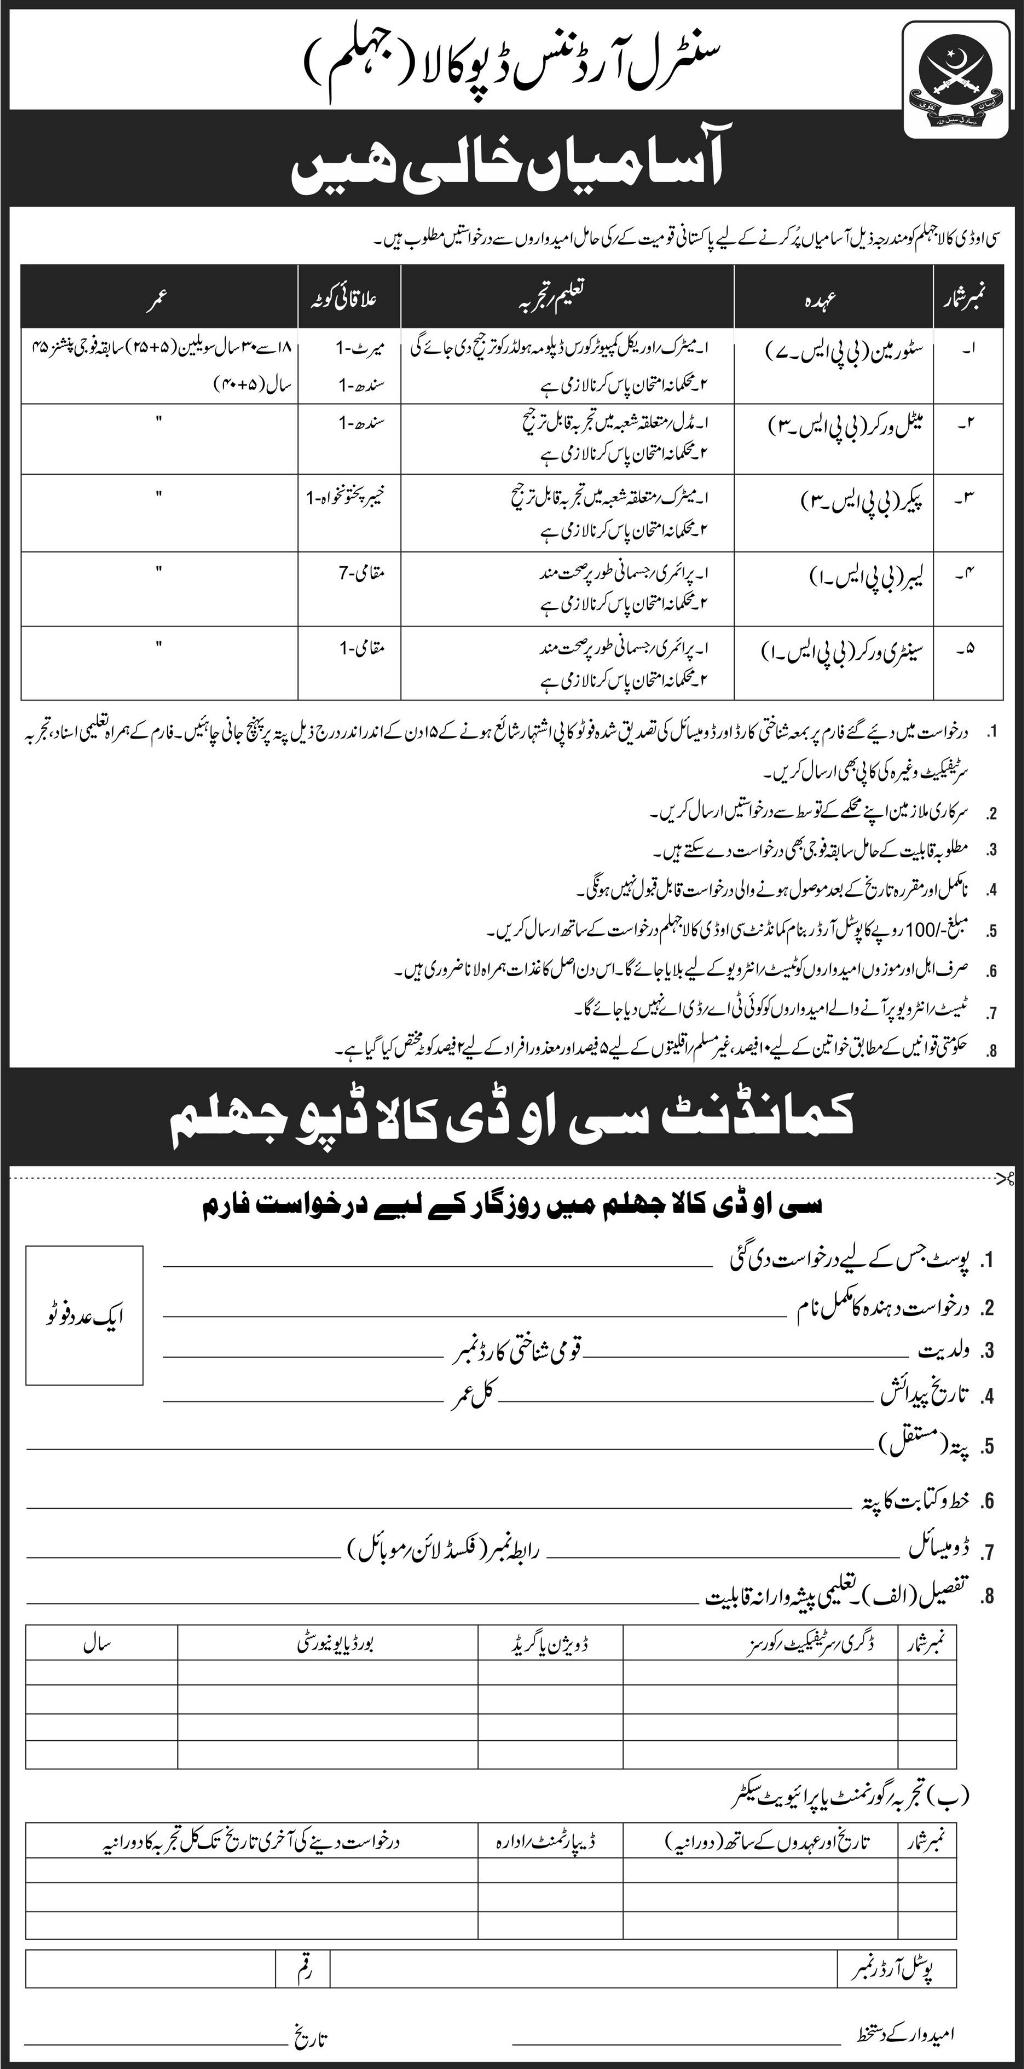 Central Ordnance Depot Kala Jhelum Jobs Latest 2018